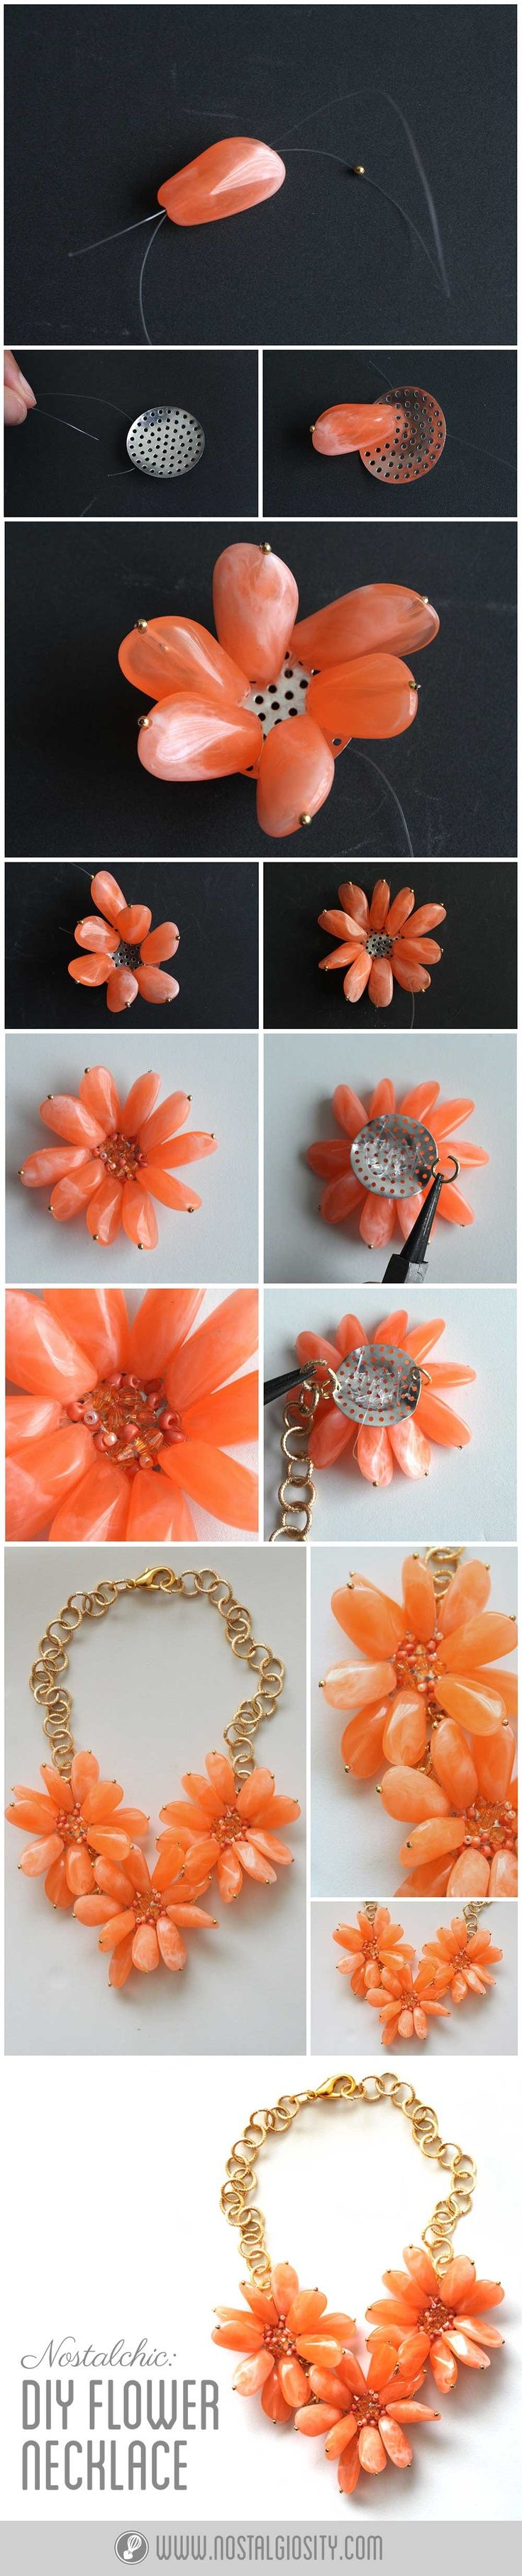 DIY Flower Statement Necklace - Nostalgia Meets Curiosity...